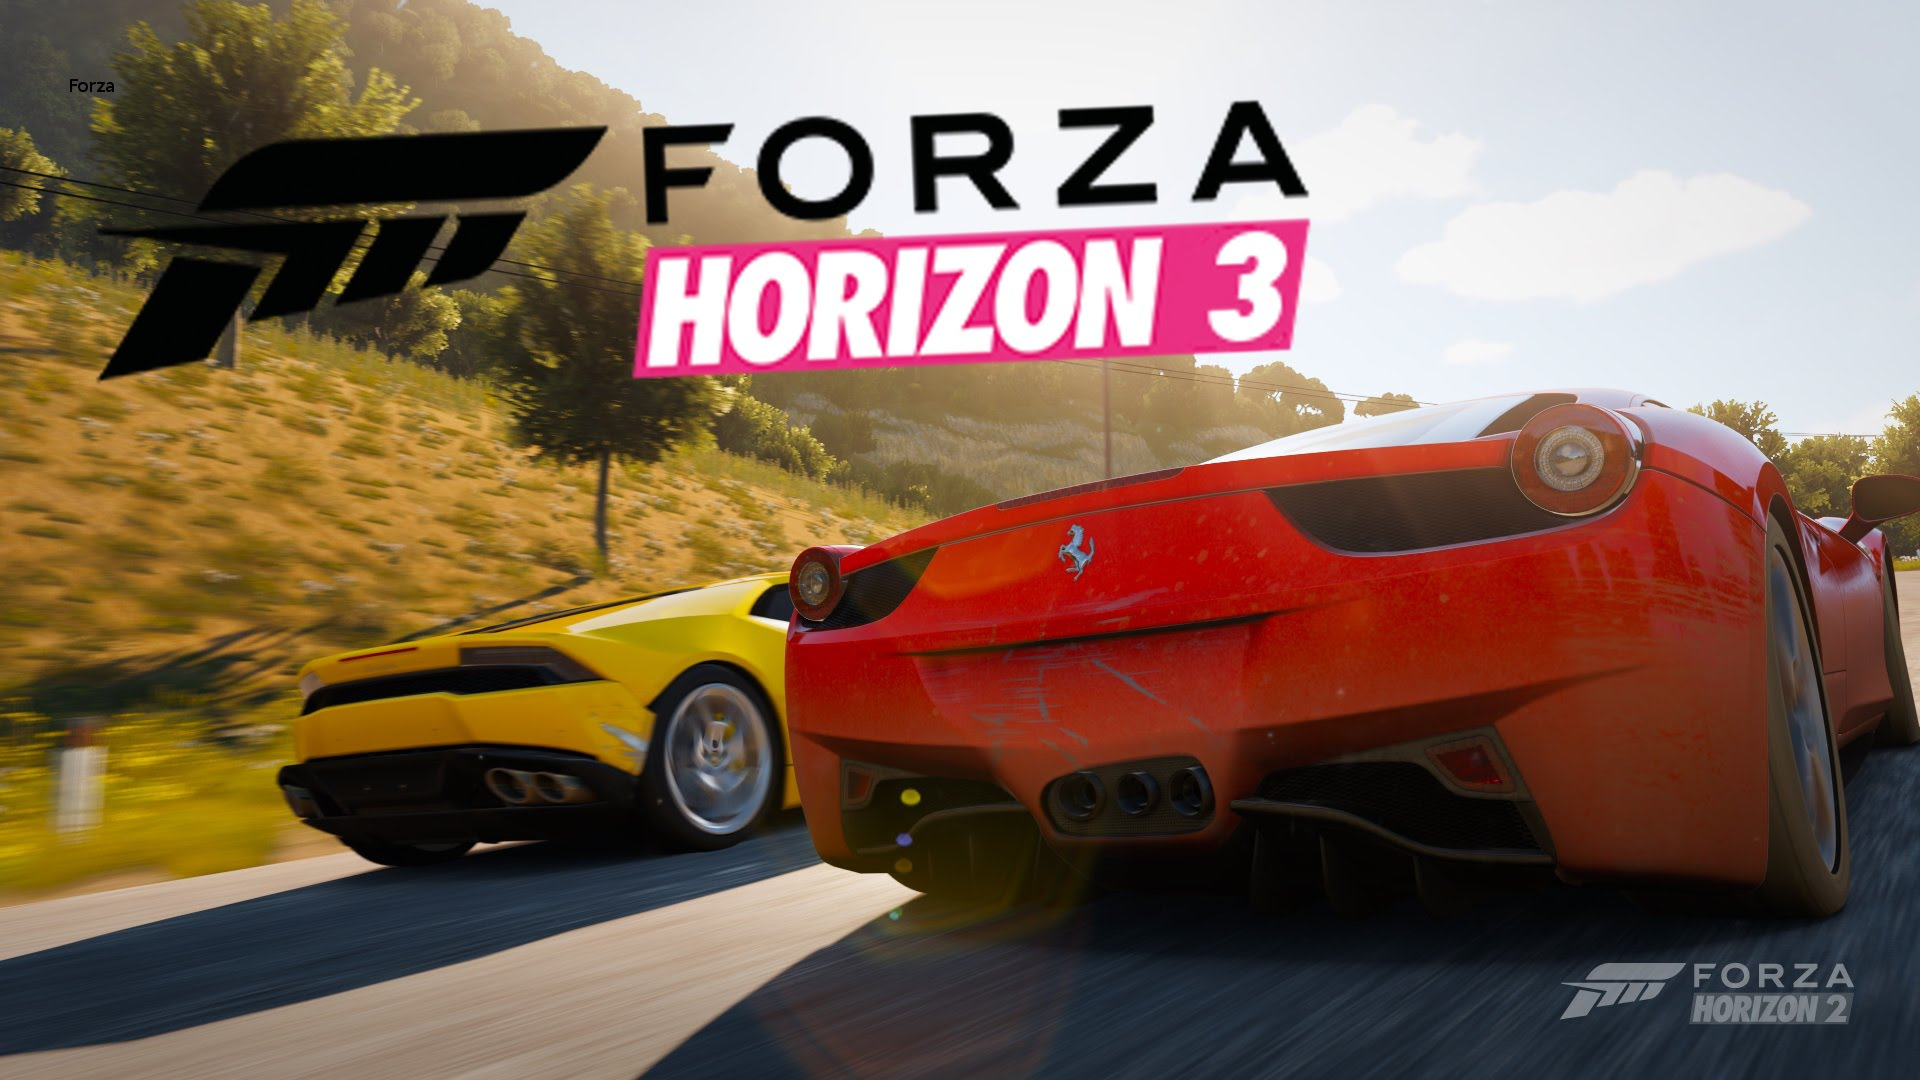 Forza Horizon 3 With All DLCs And Updates Free Download Latest